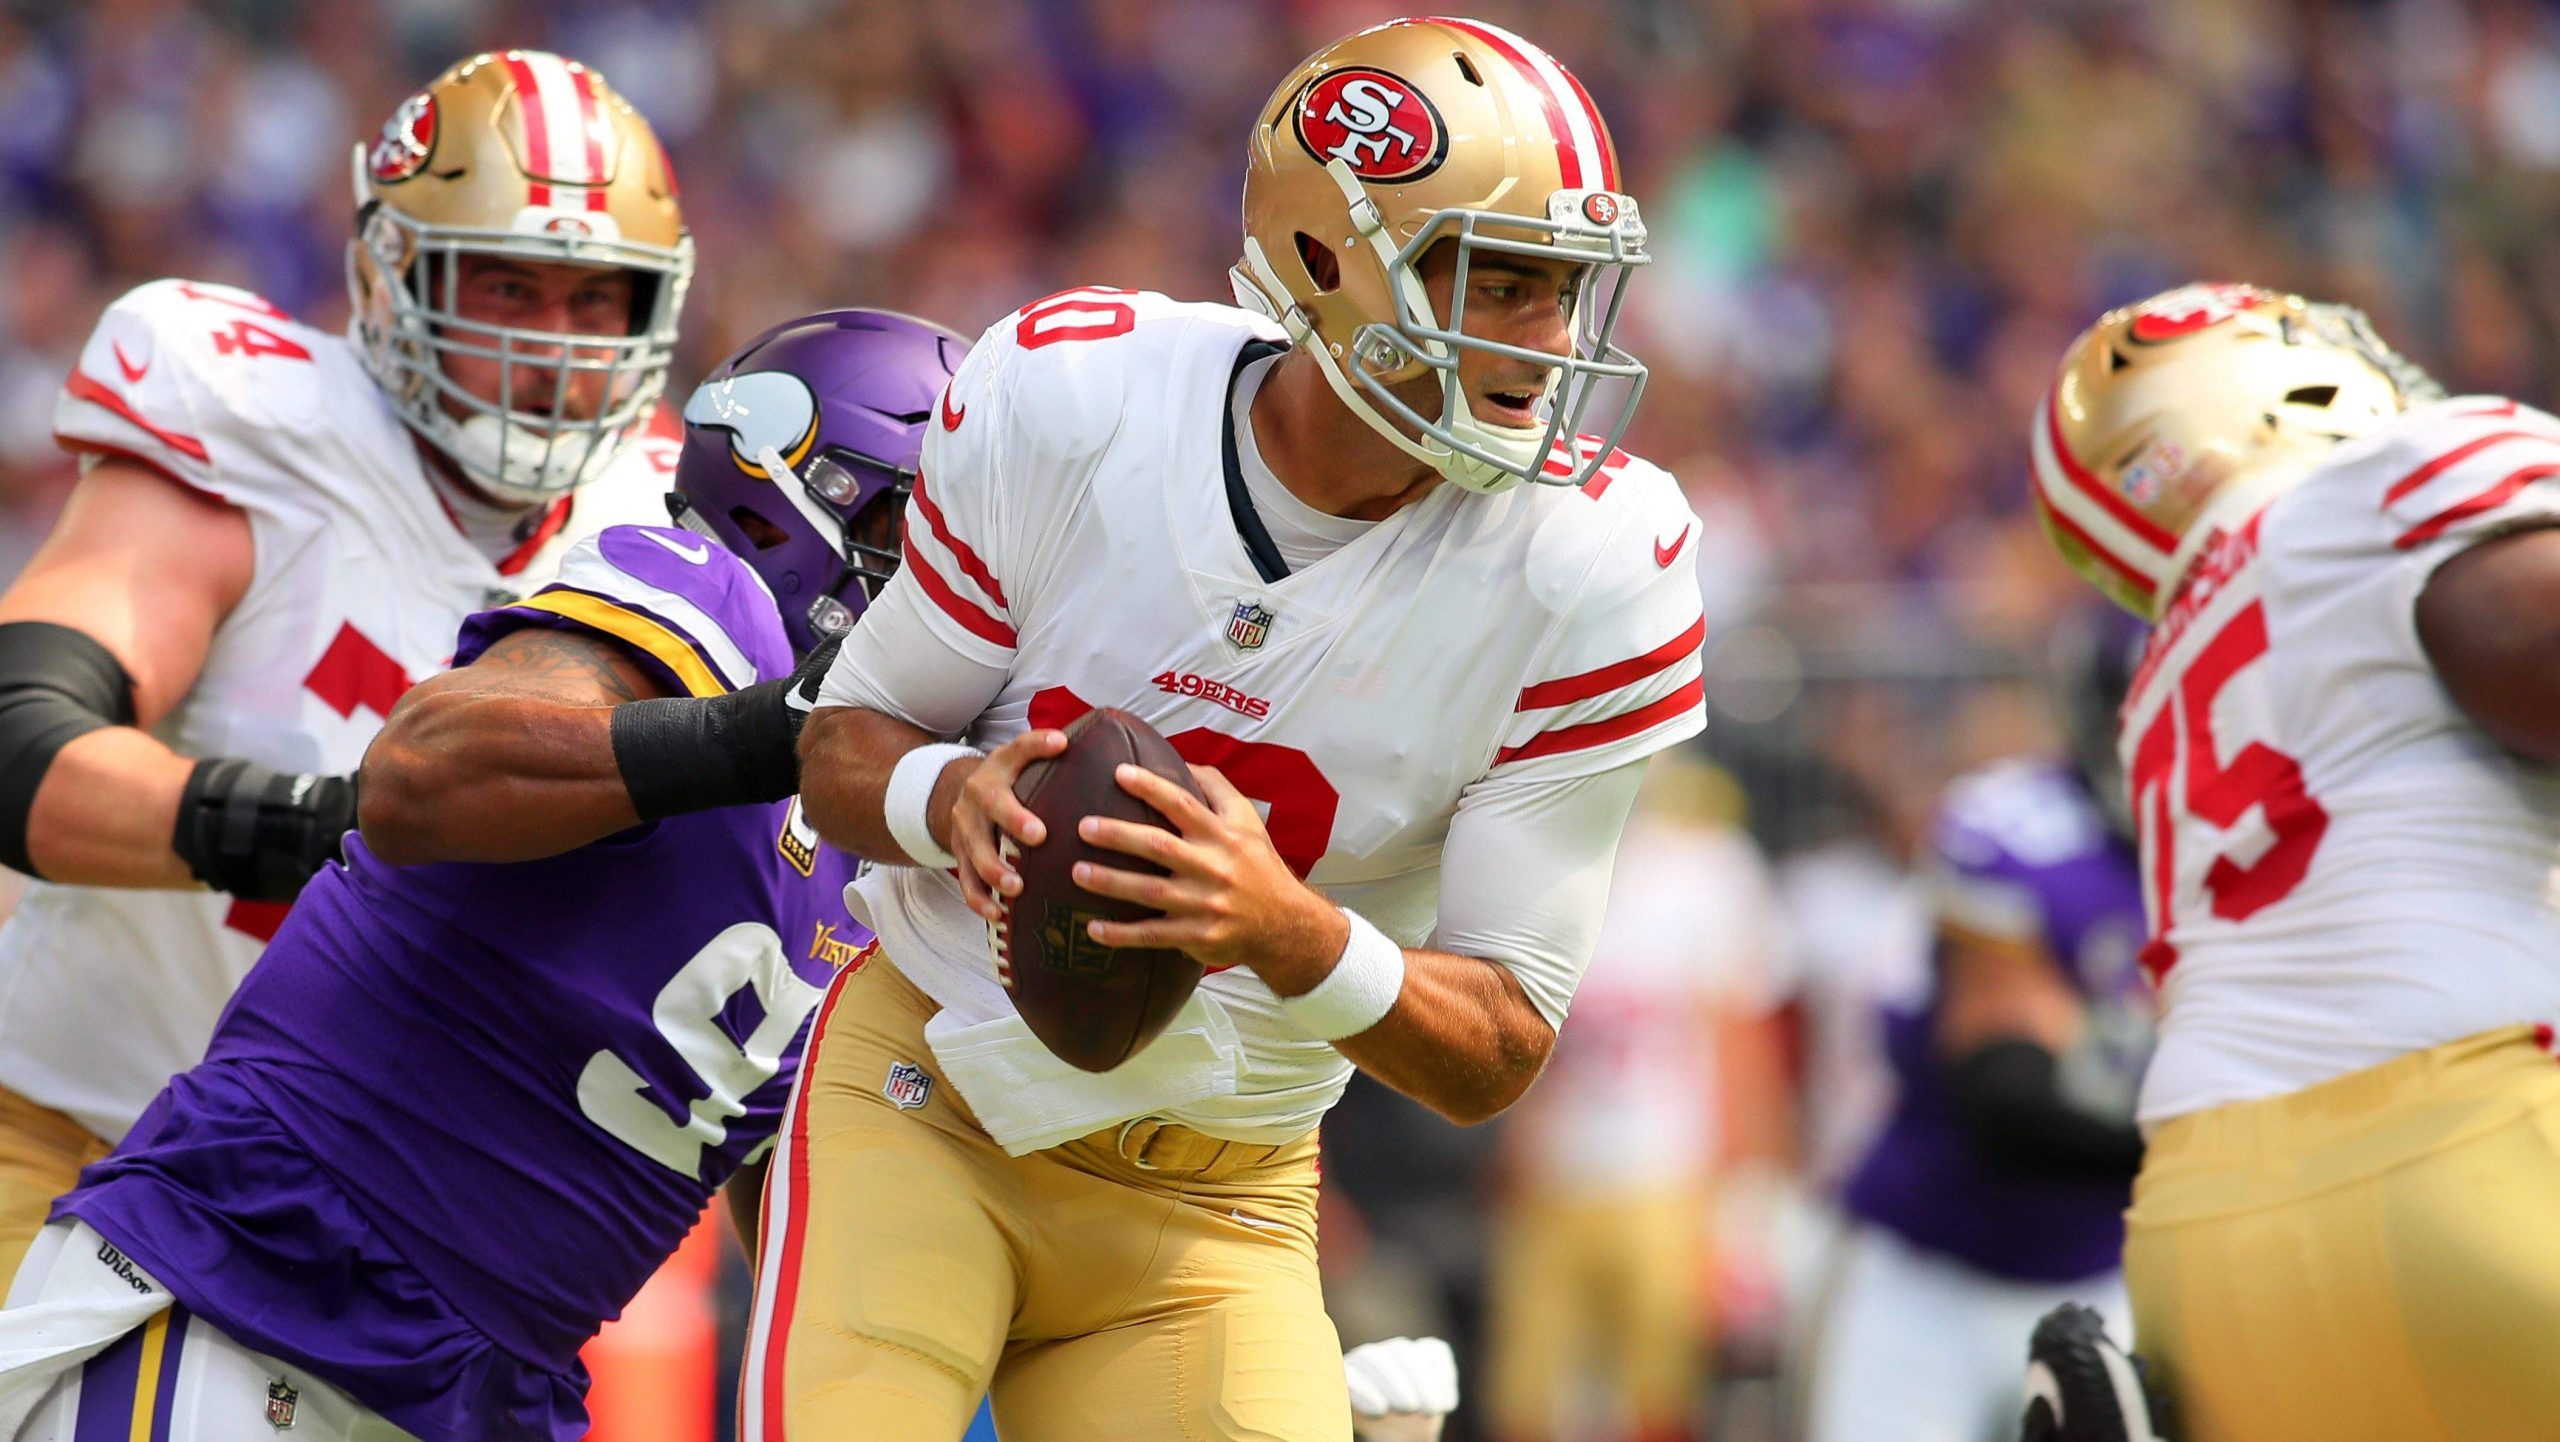 Minnesota Vikings vs San Francisco 49ers